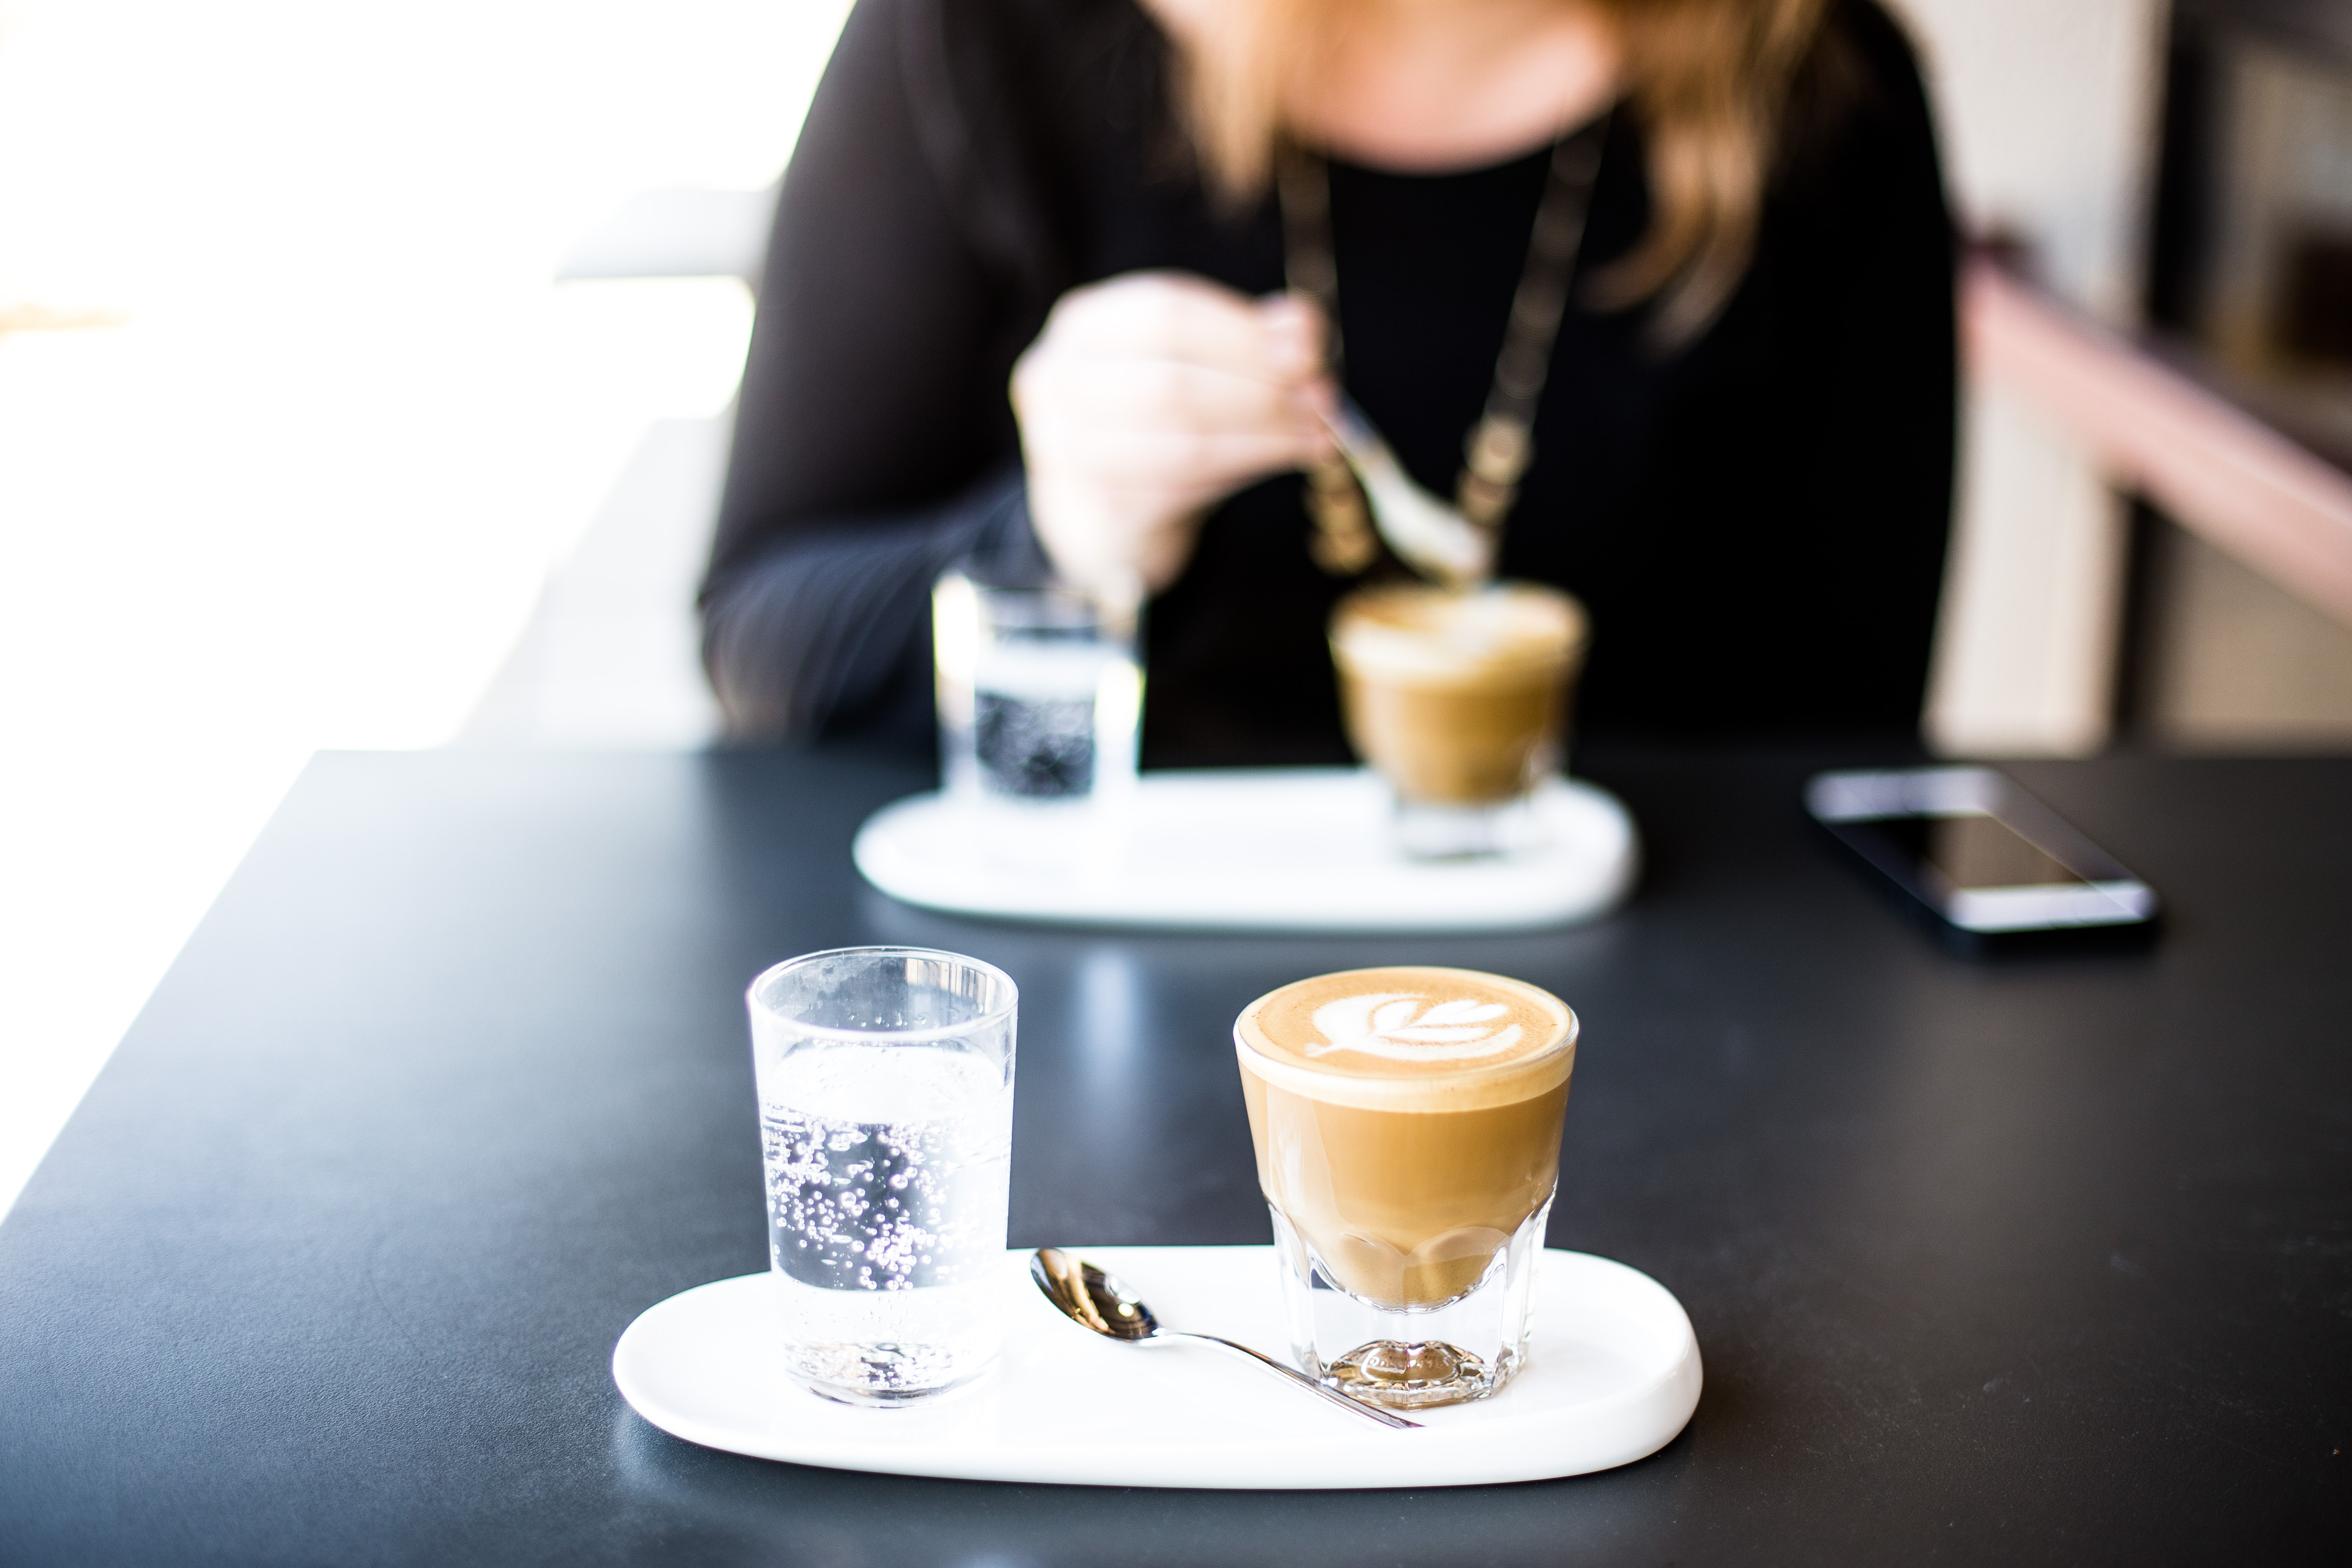 A woman sitting over a cup of coffee with another cup of coffee on the other side of the table